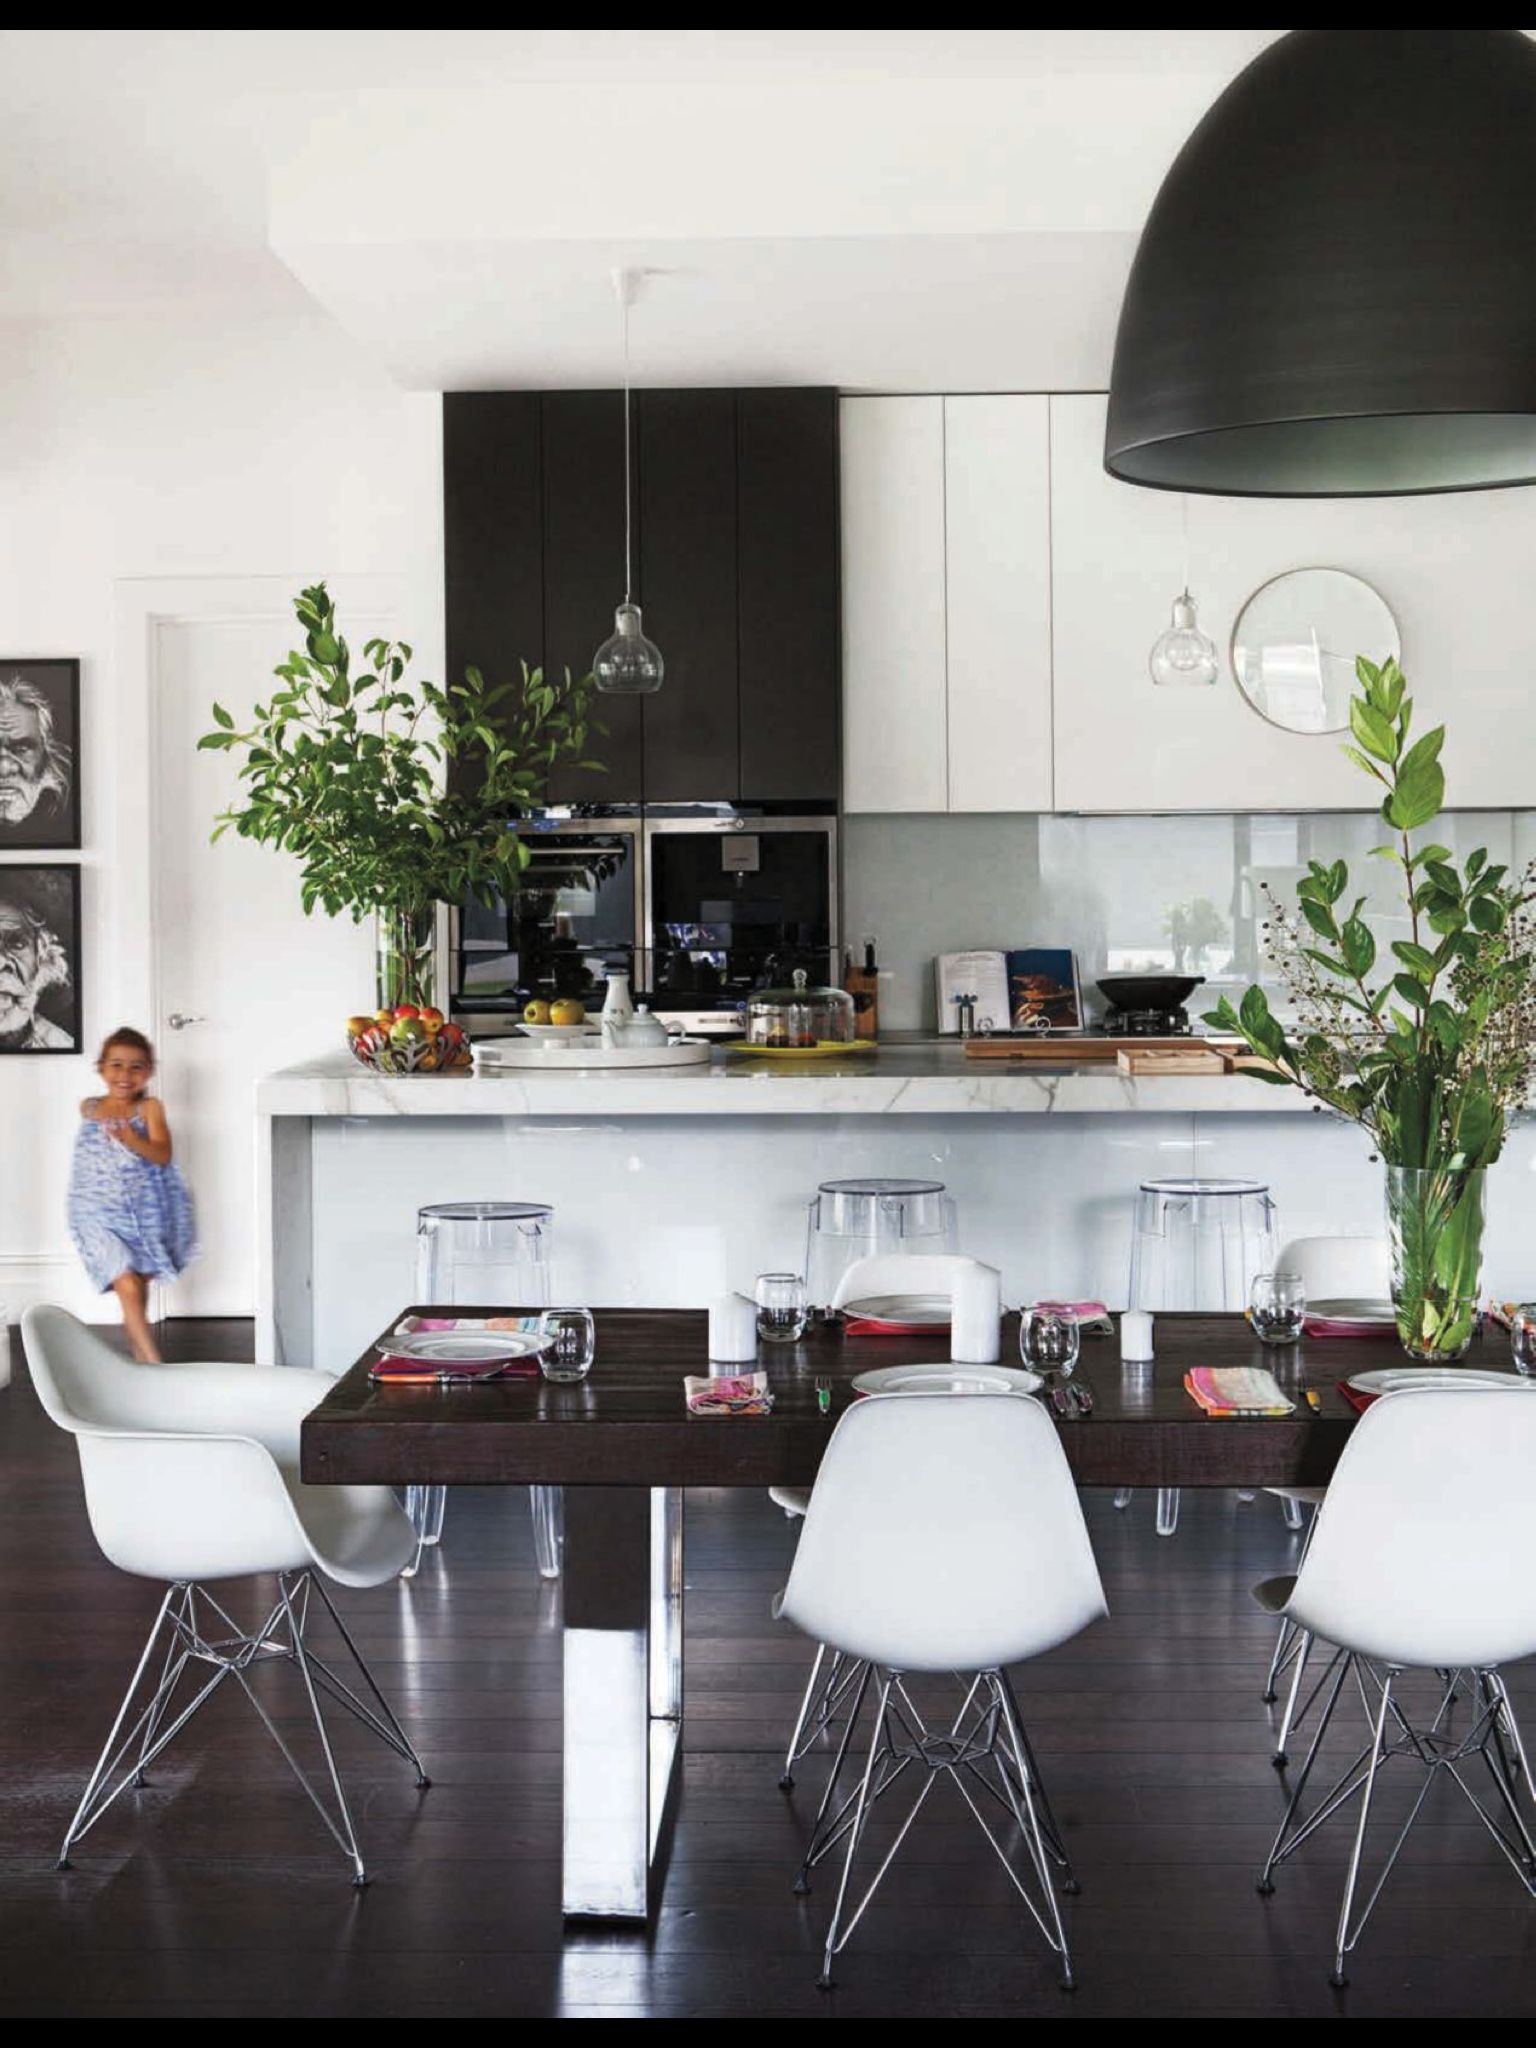 Black And White Kitchen With Glass Pendants Over Island